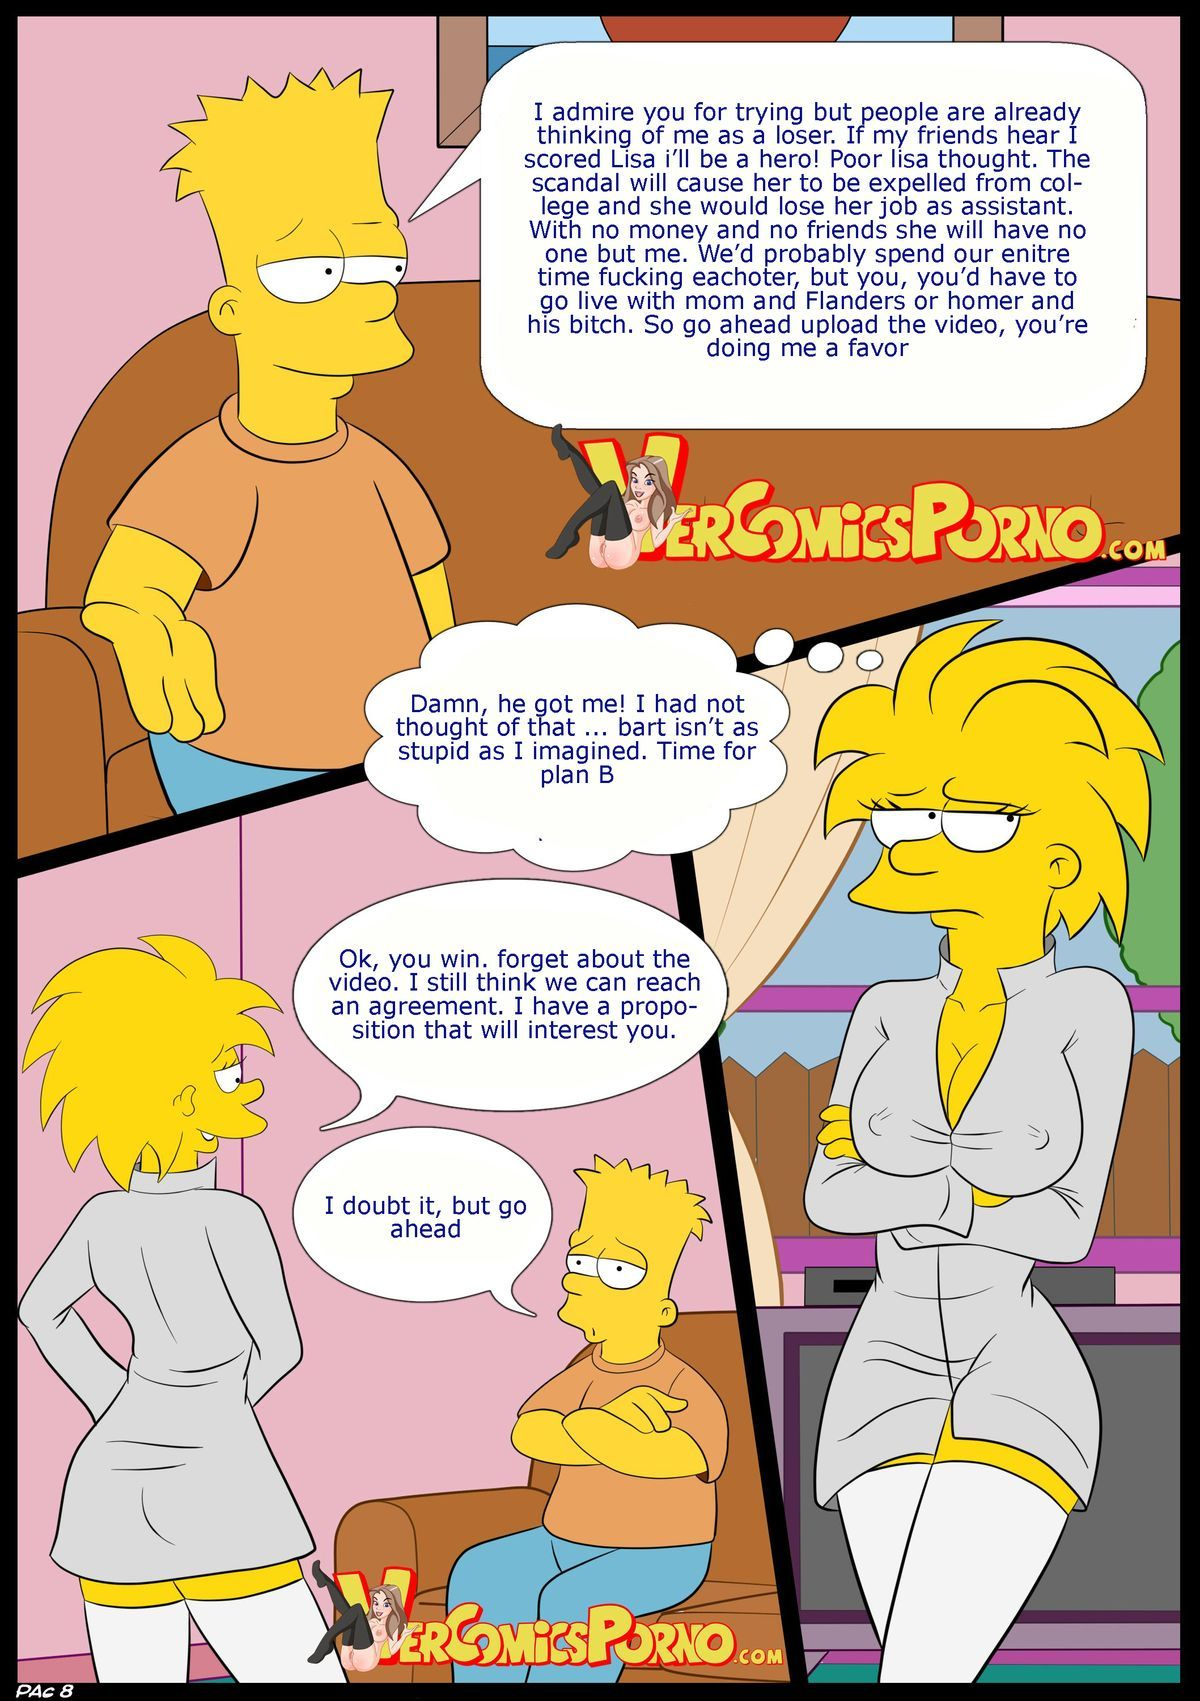 9 35 - The Simpsons. Part 2.